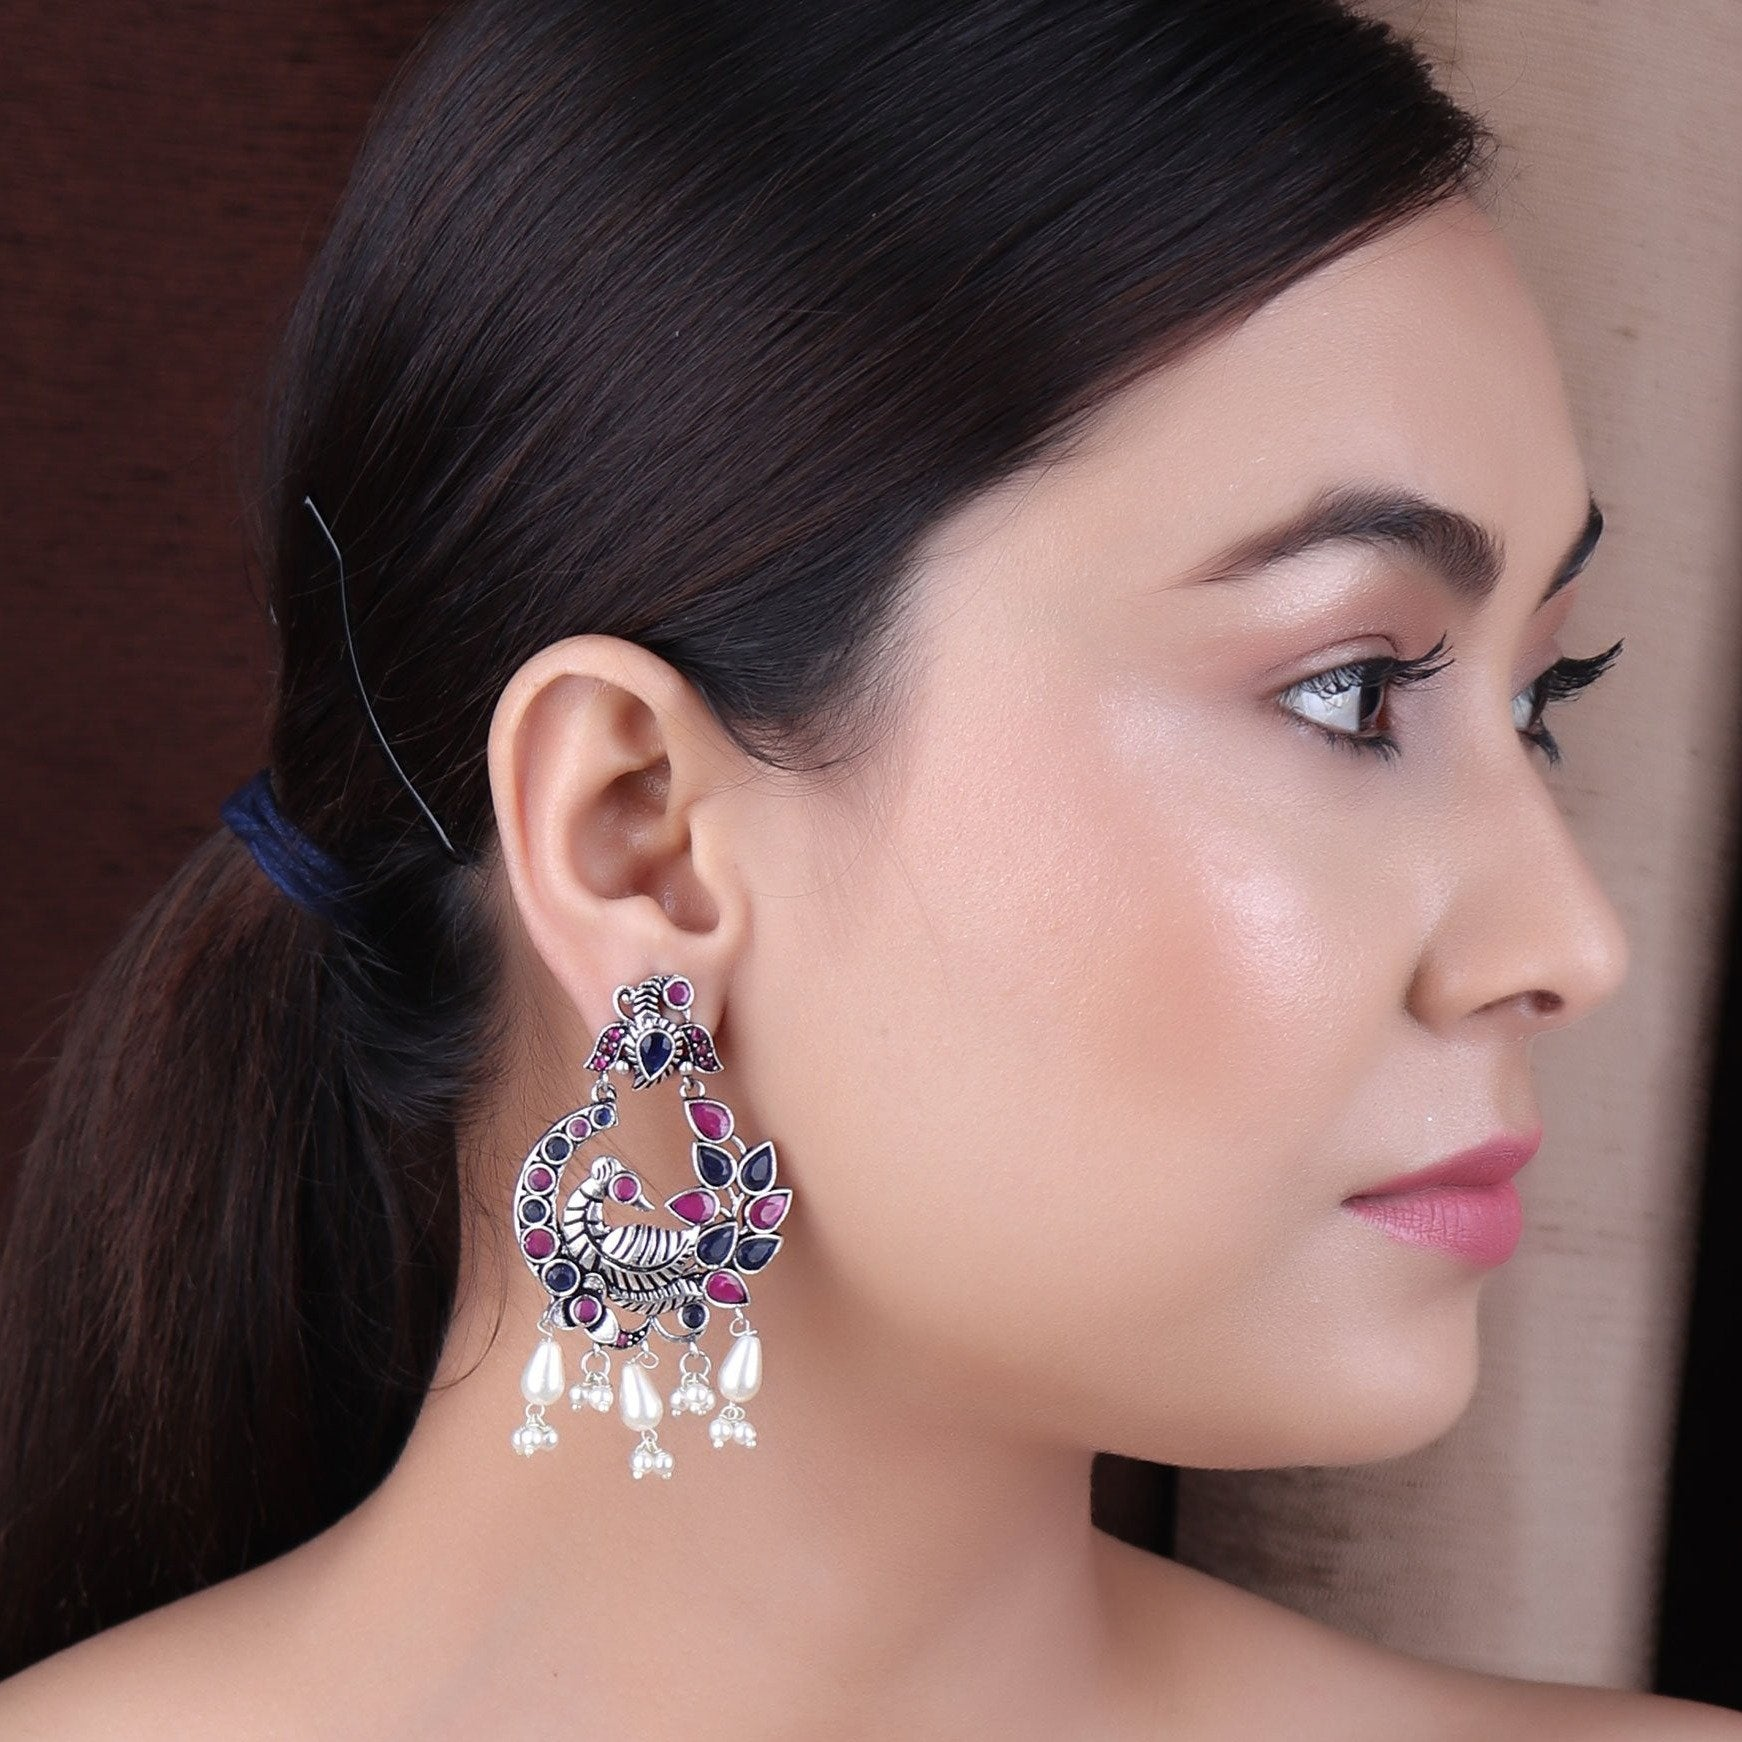 The Royal Princess Earrings with Magenta & Blue Stone